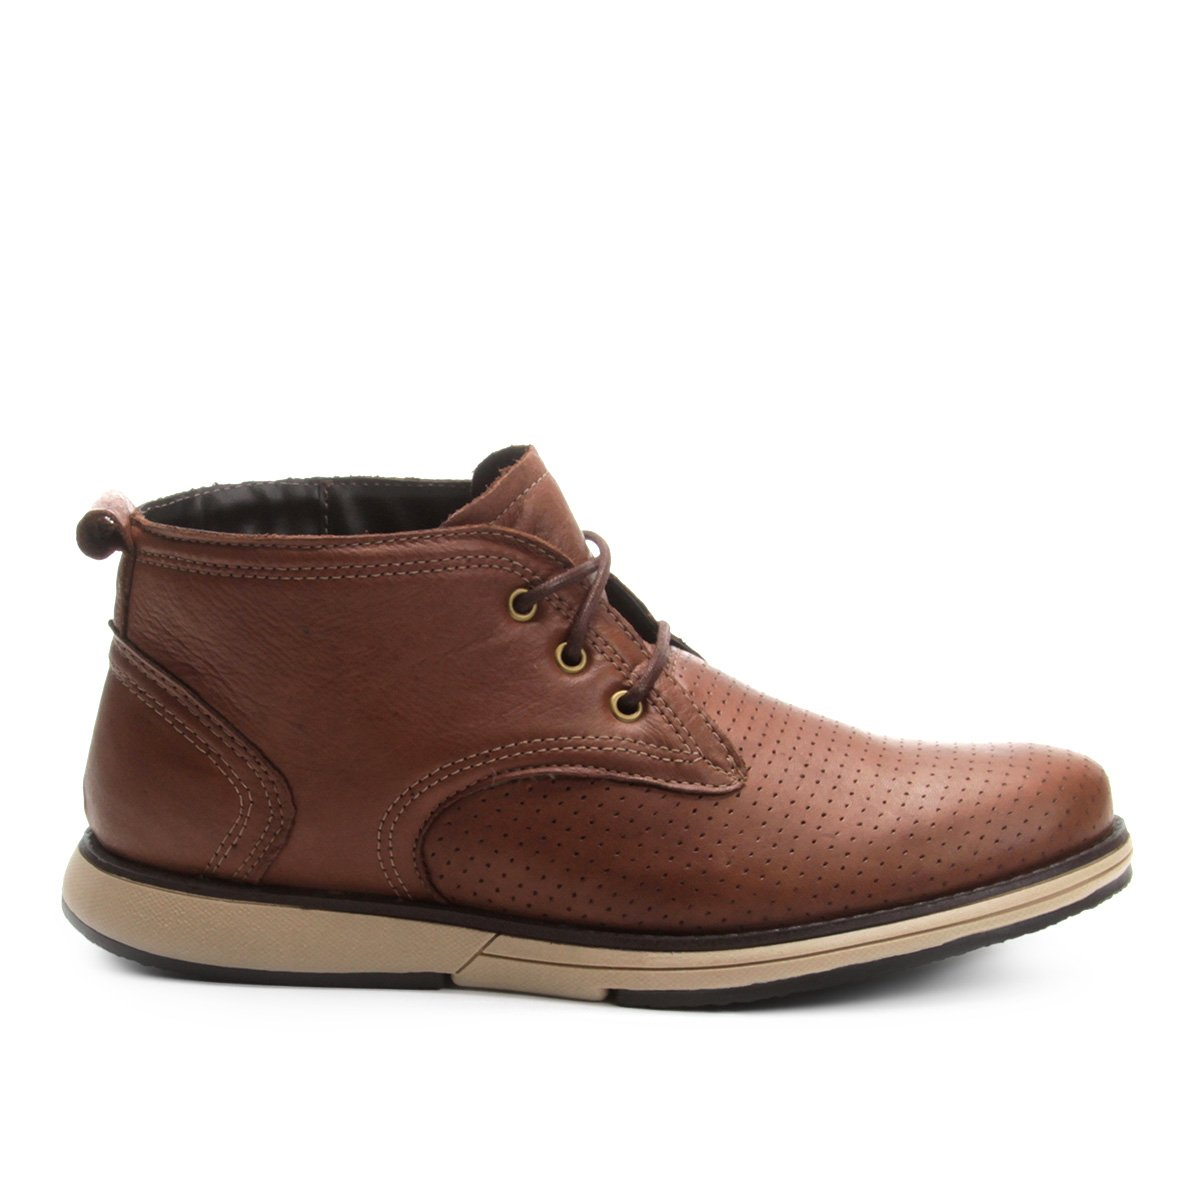 Bota Masculina Walkabout com Cano Cut Caramelo Laser Curto Couro rR4qwr